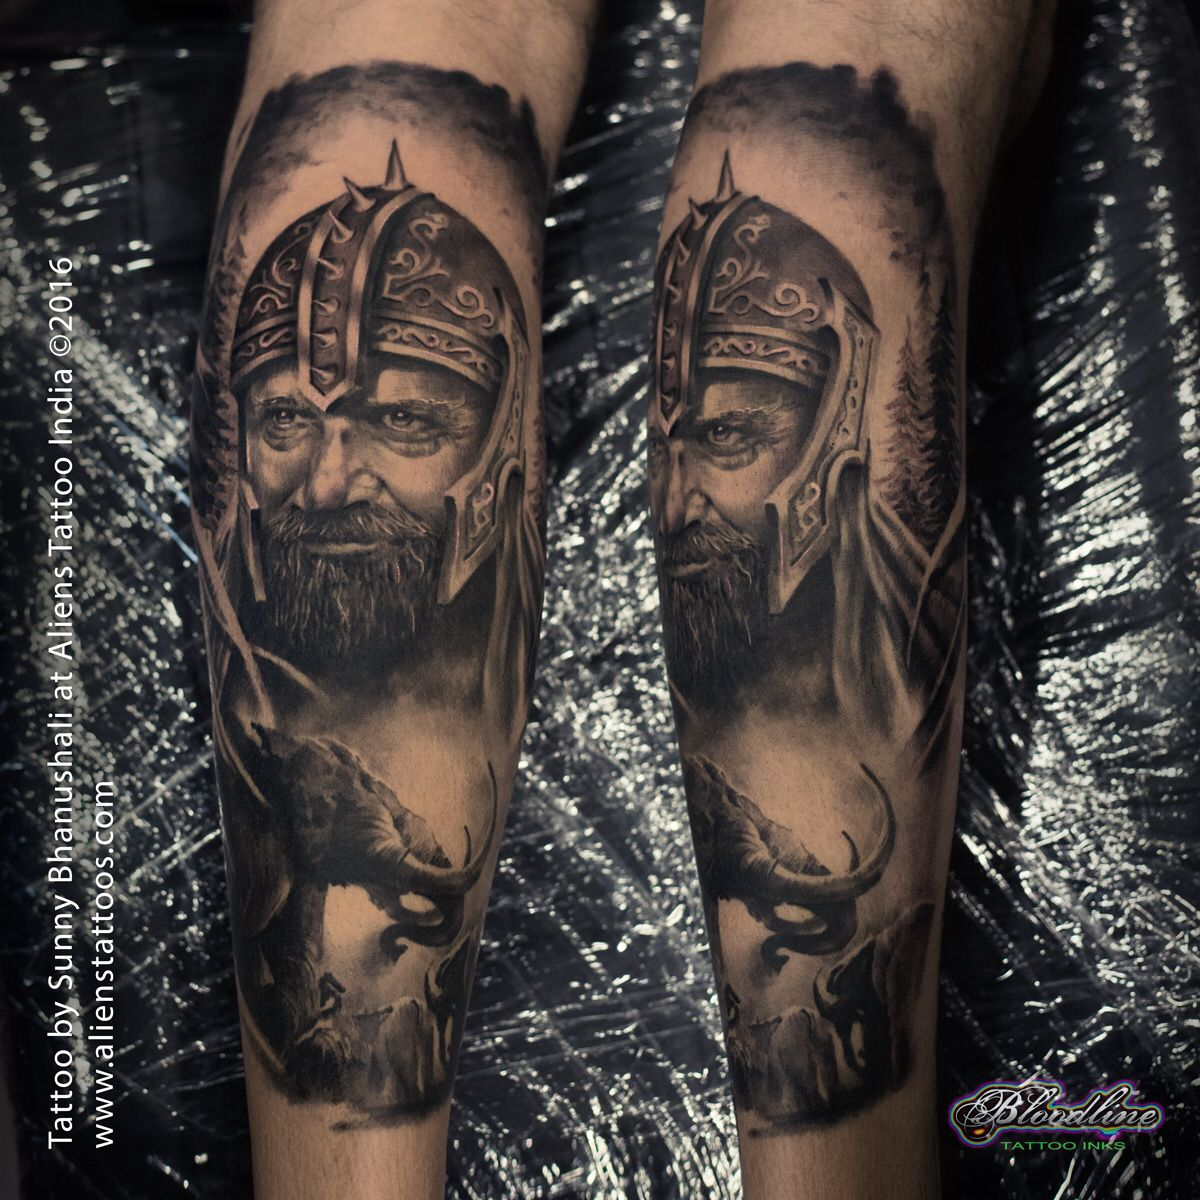 Best Tattoo Studio In Mumbai India: Medieval Warrior Tattoo By Sunny Bhanushali At Aliens